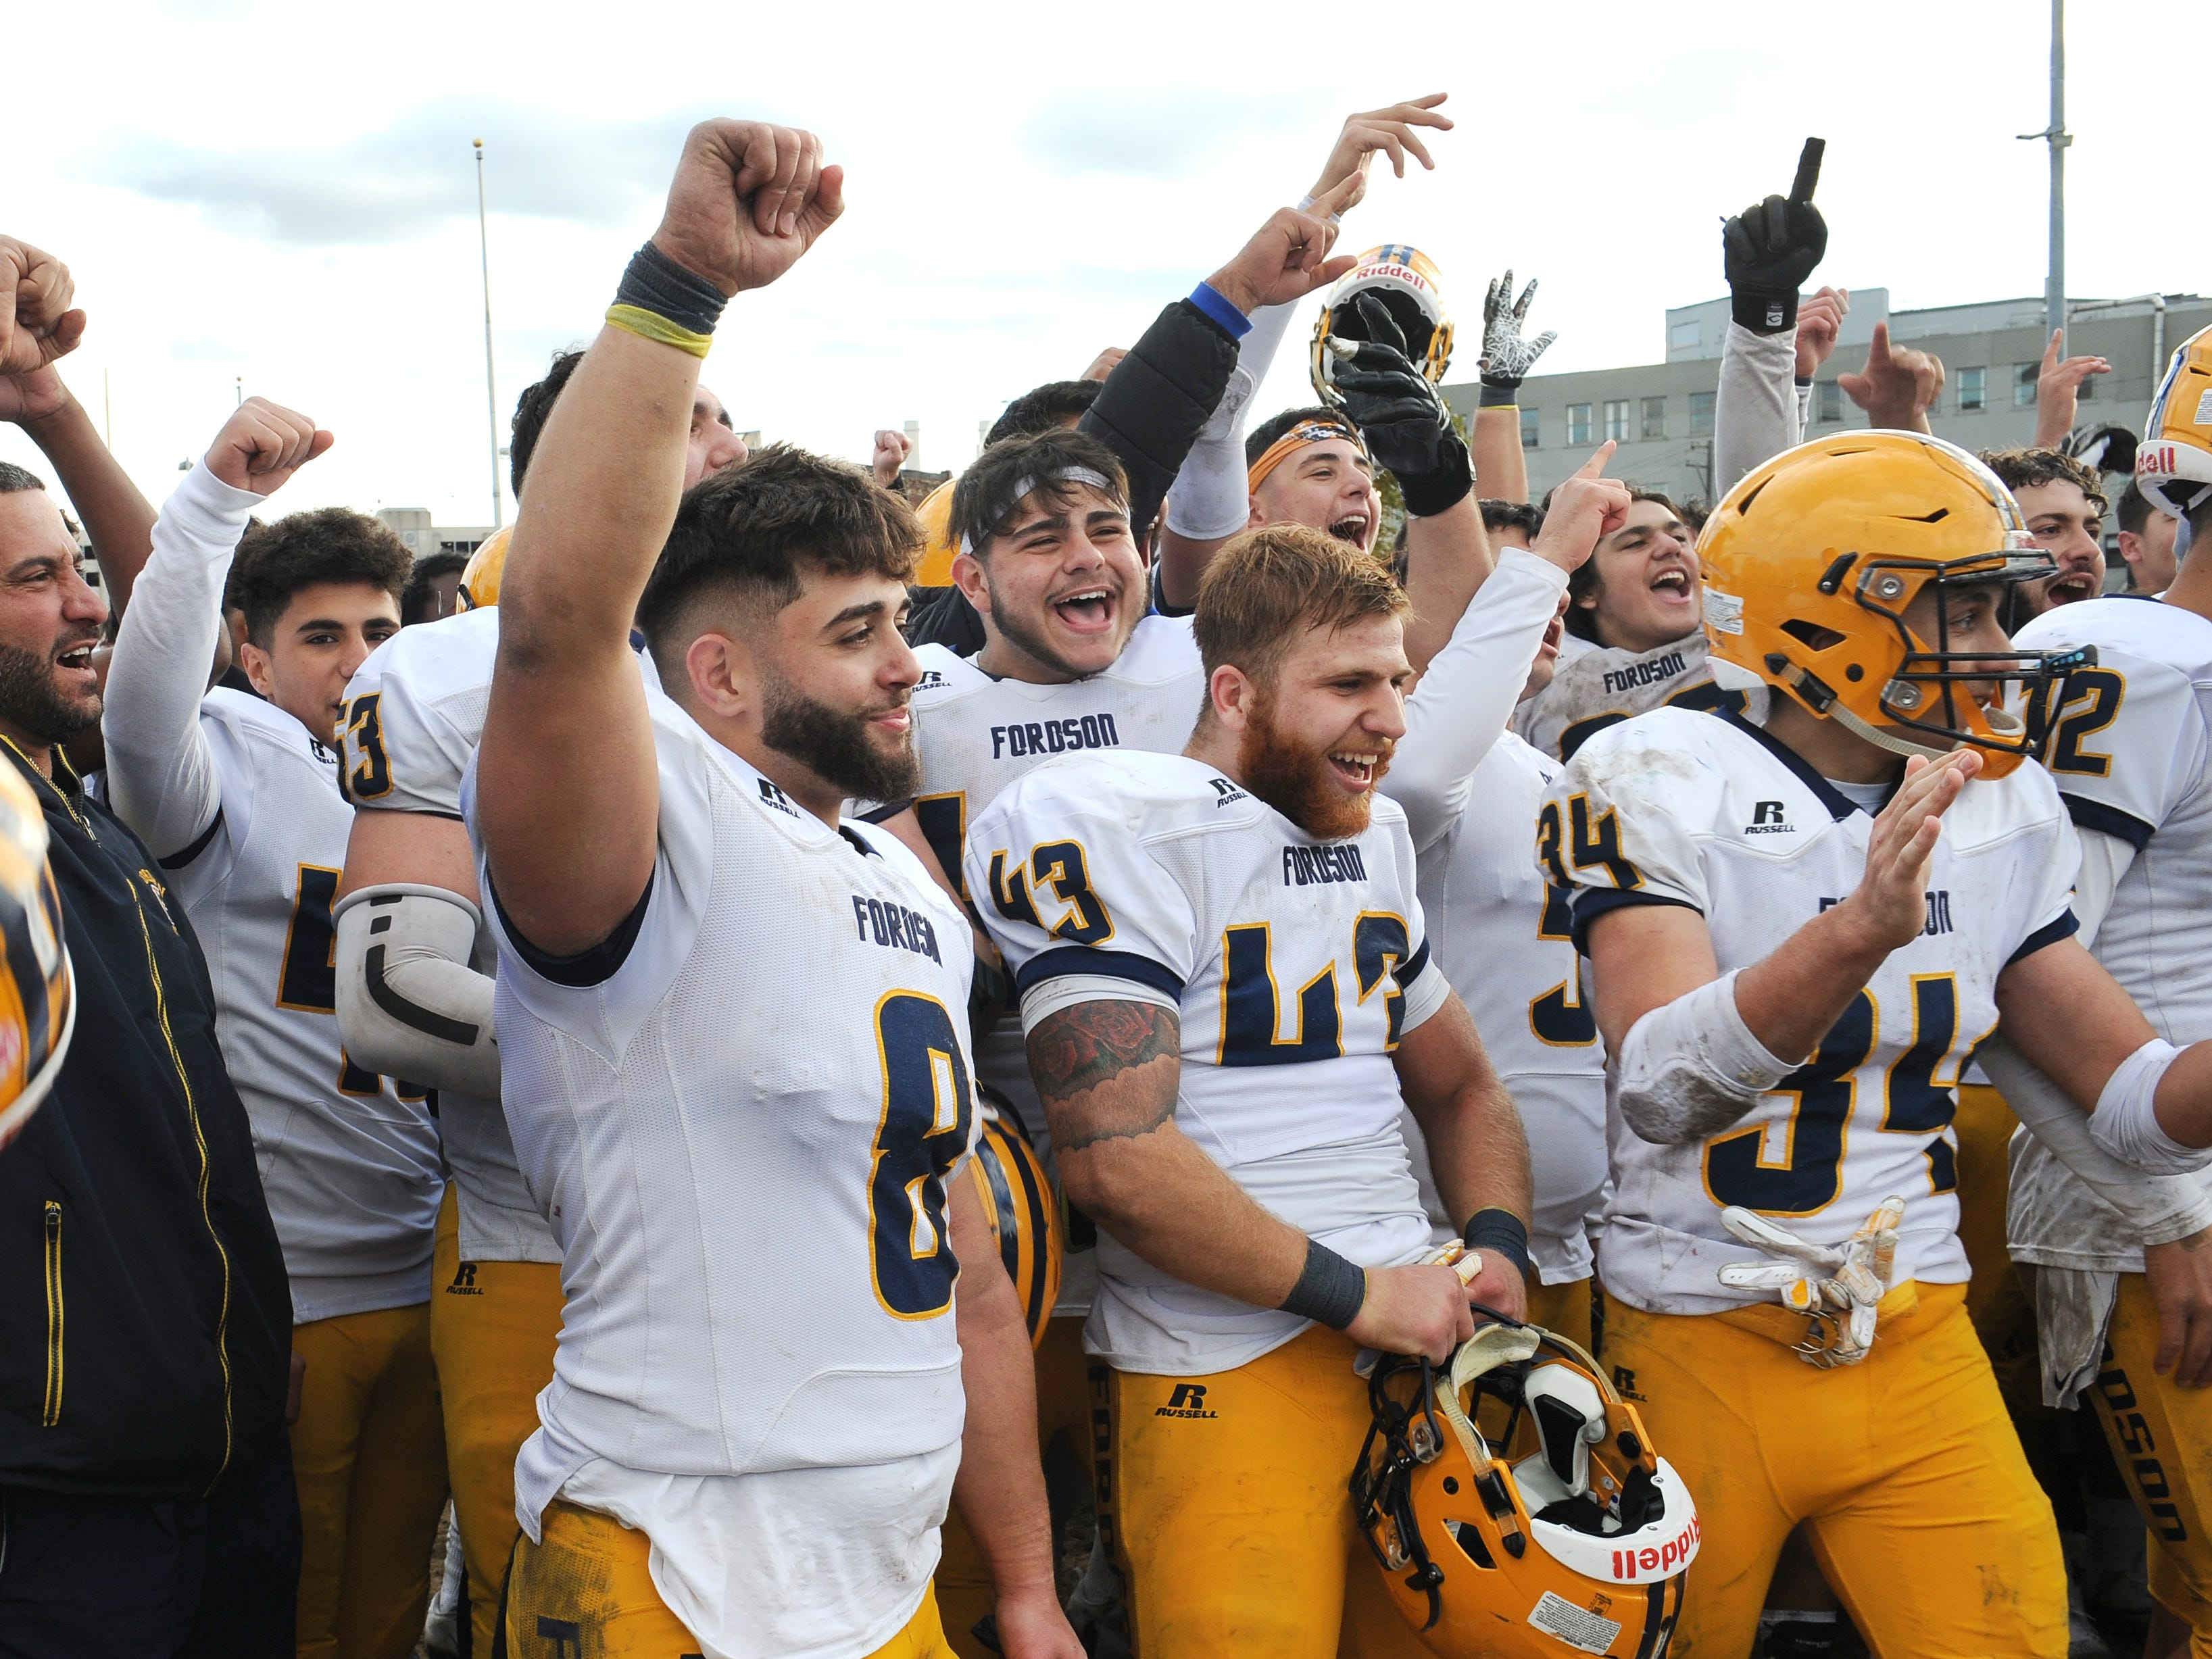 Dearborn Fordson High School players celebrate their win over Cass Technical High School 41-14.